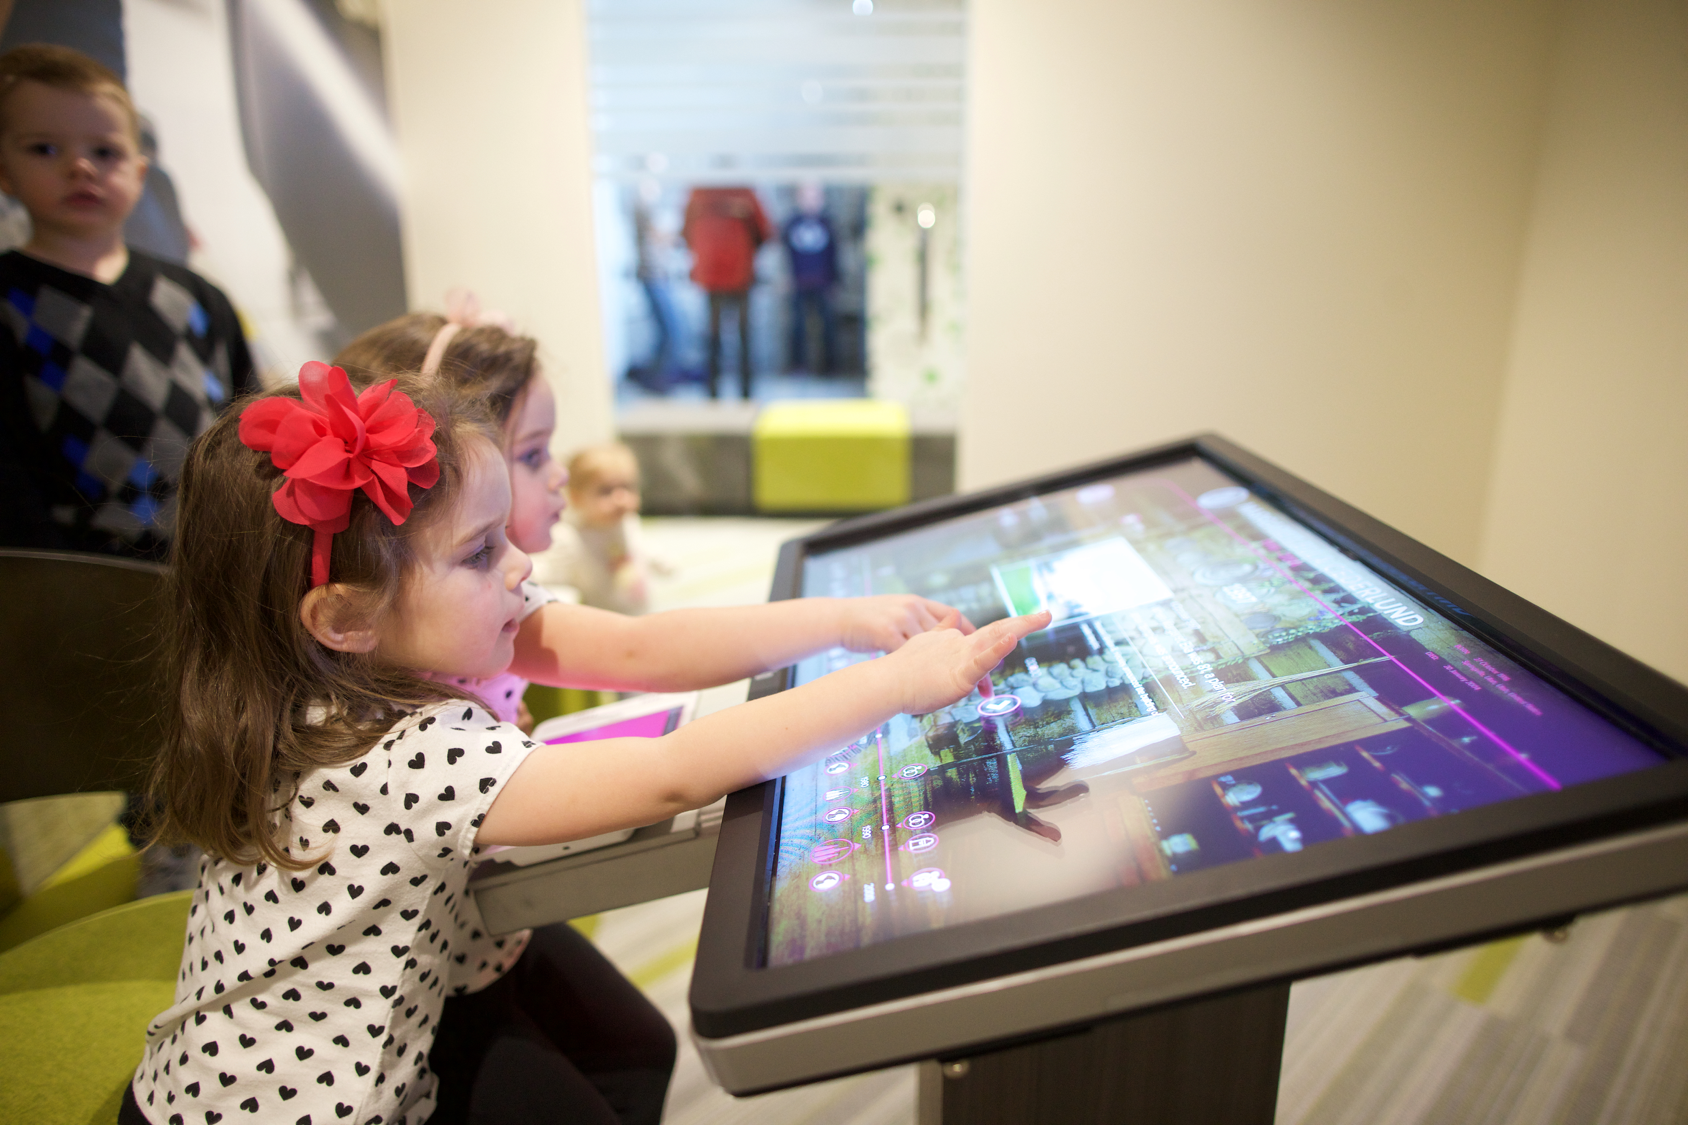 Family History Library Unveils Salt Lake City's Newest Attraction